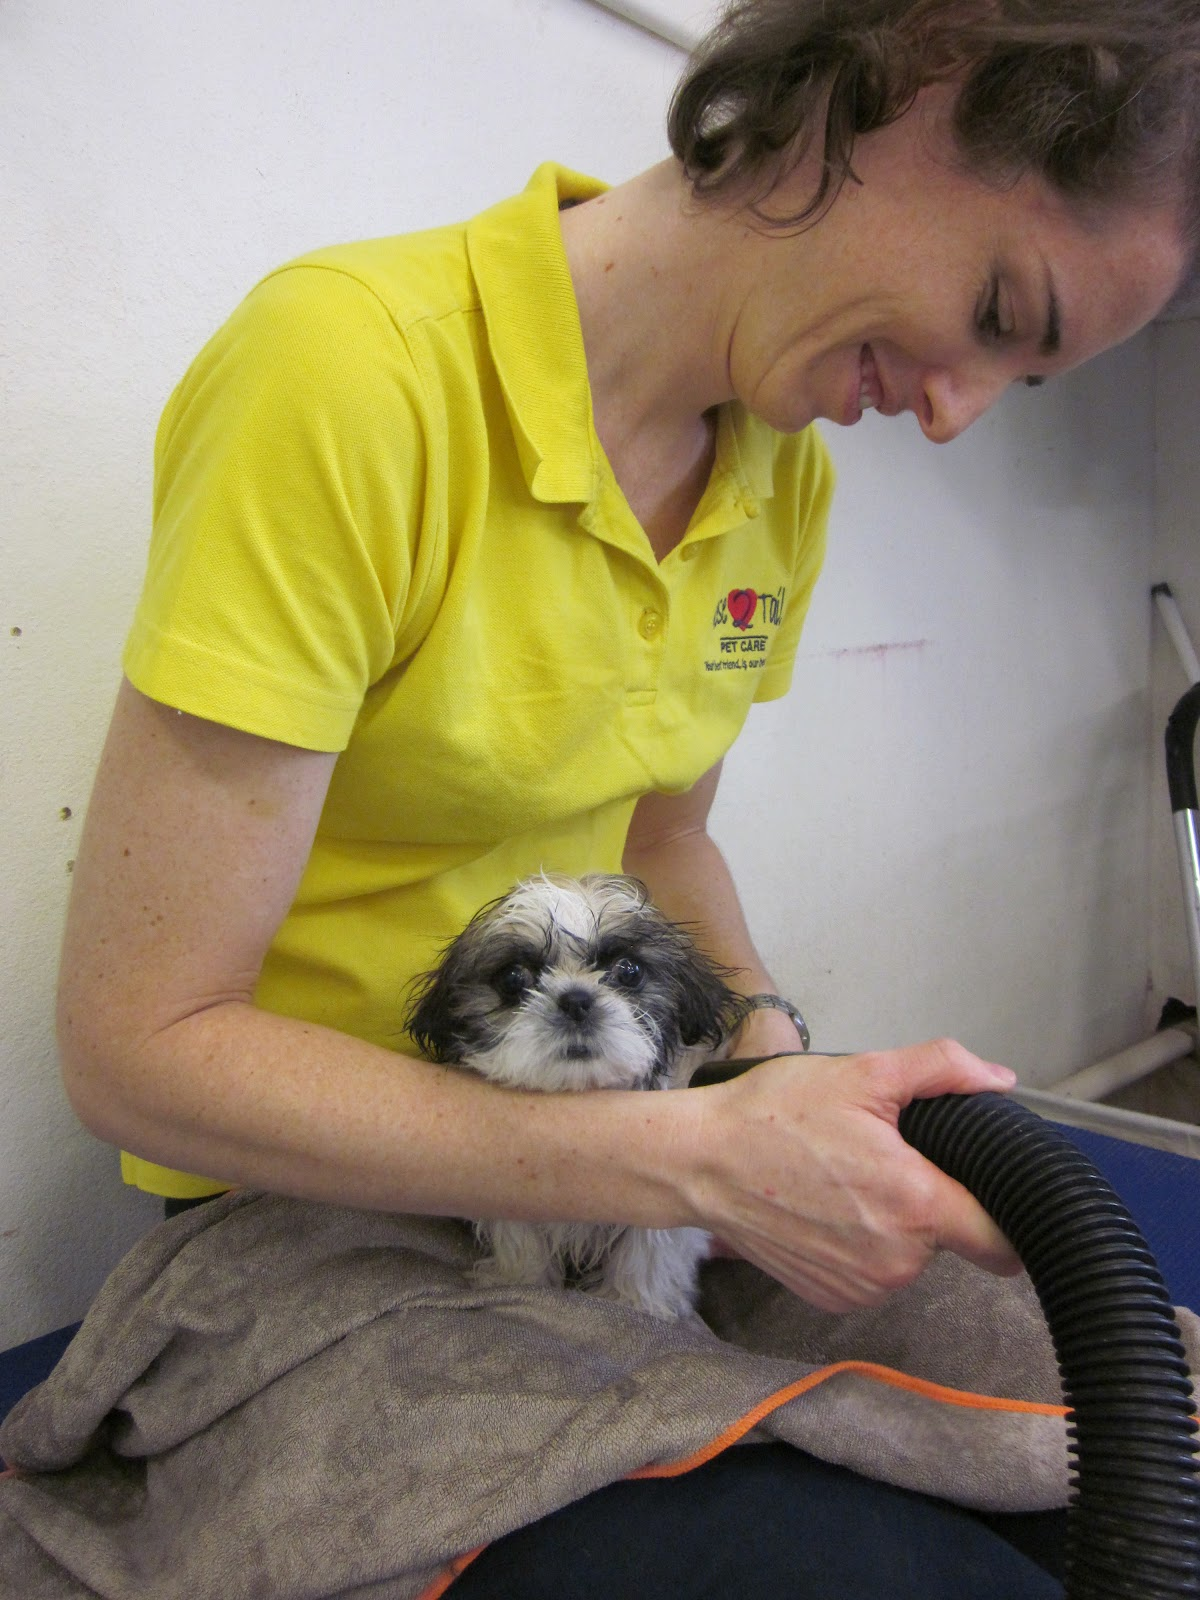 nose 2 tail pet care latest news july 2012